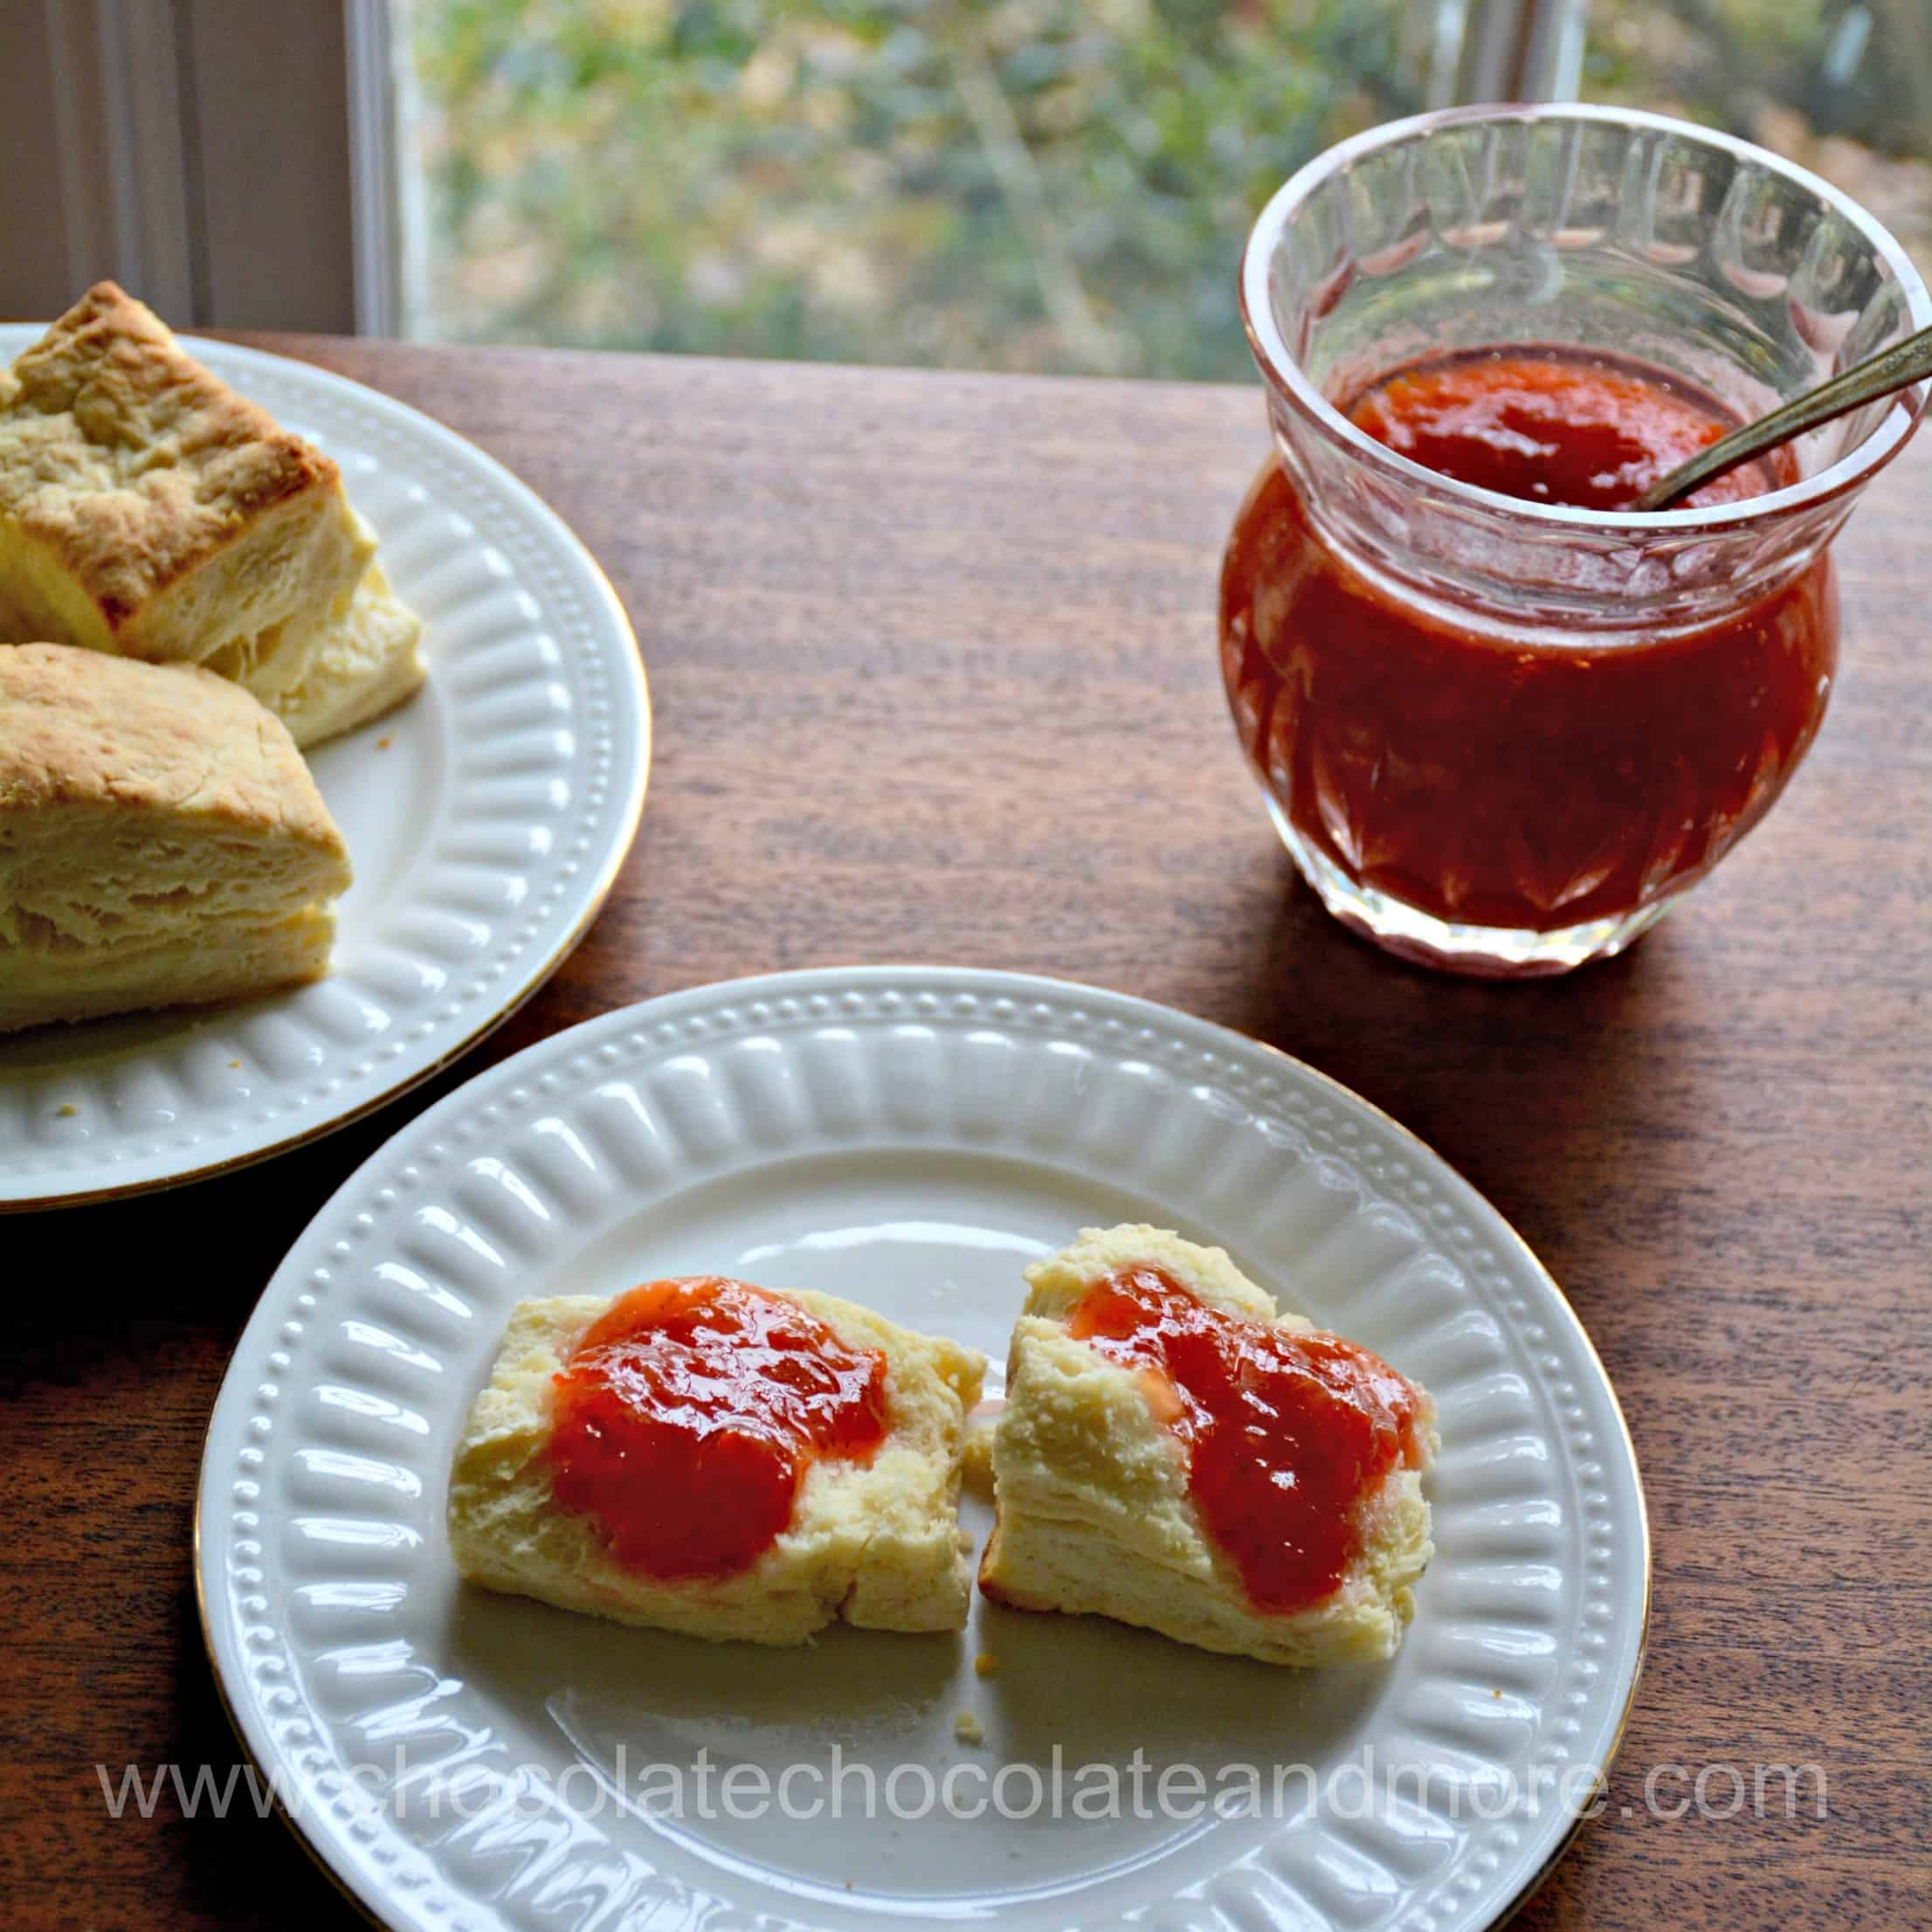 raspberry grapefruit marmalade on a pastry with a bowl of it on the table